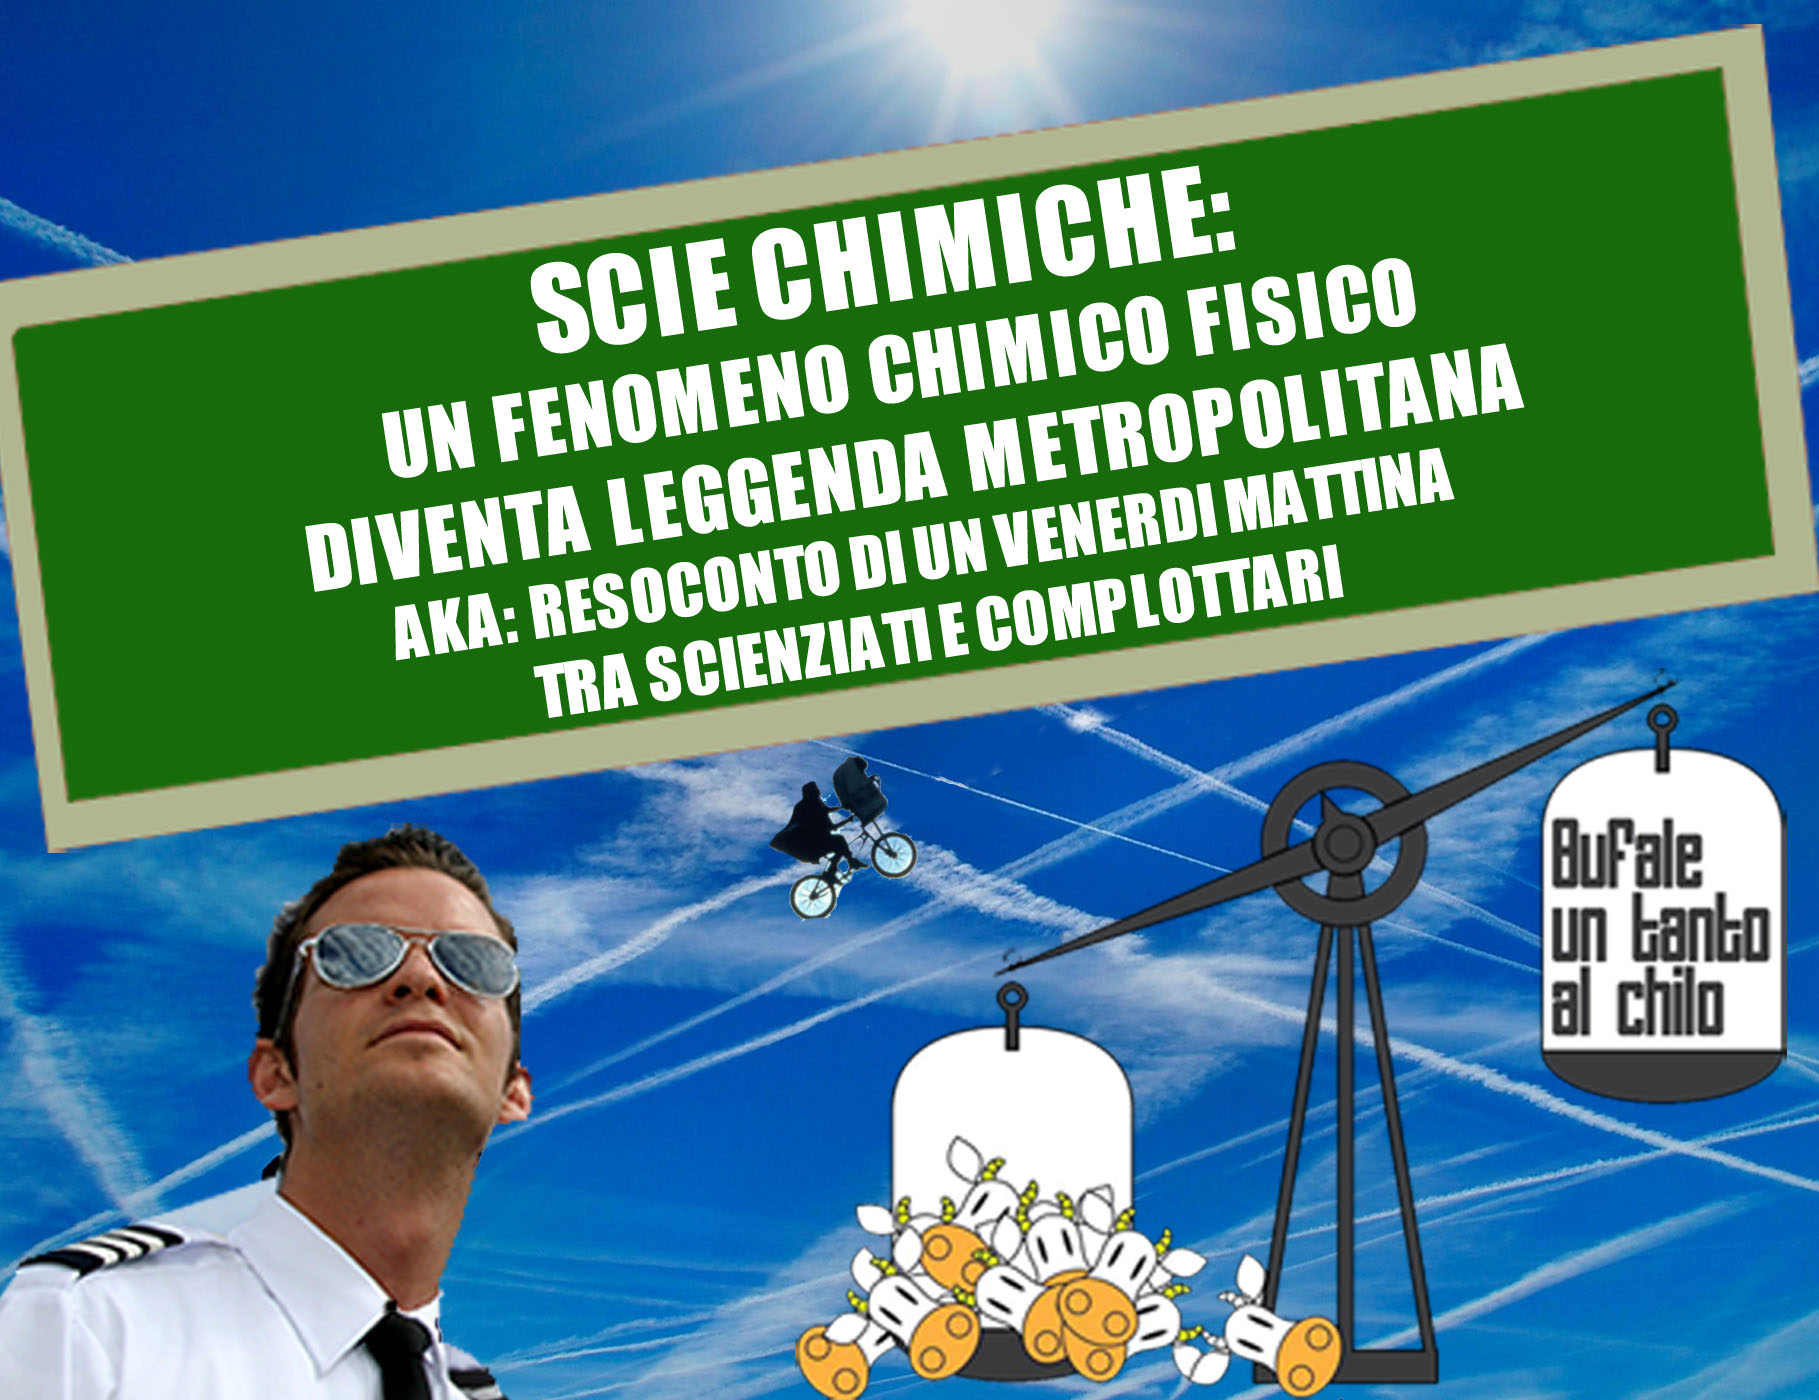 sciebologna1